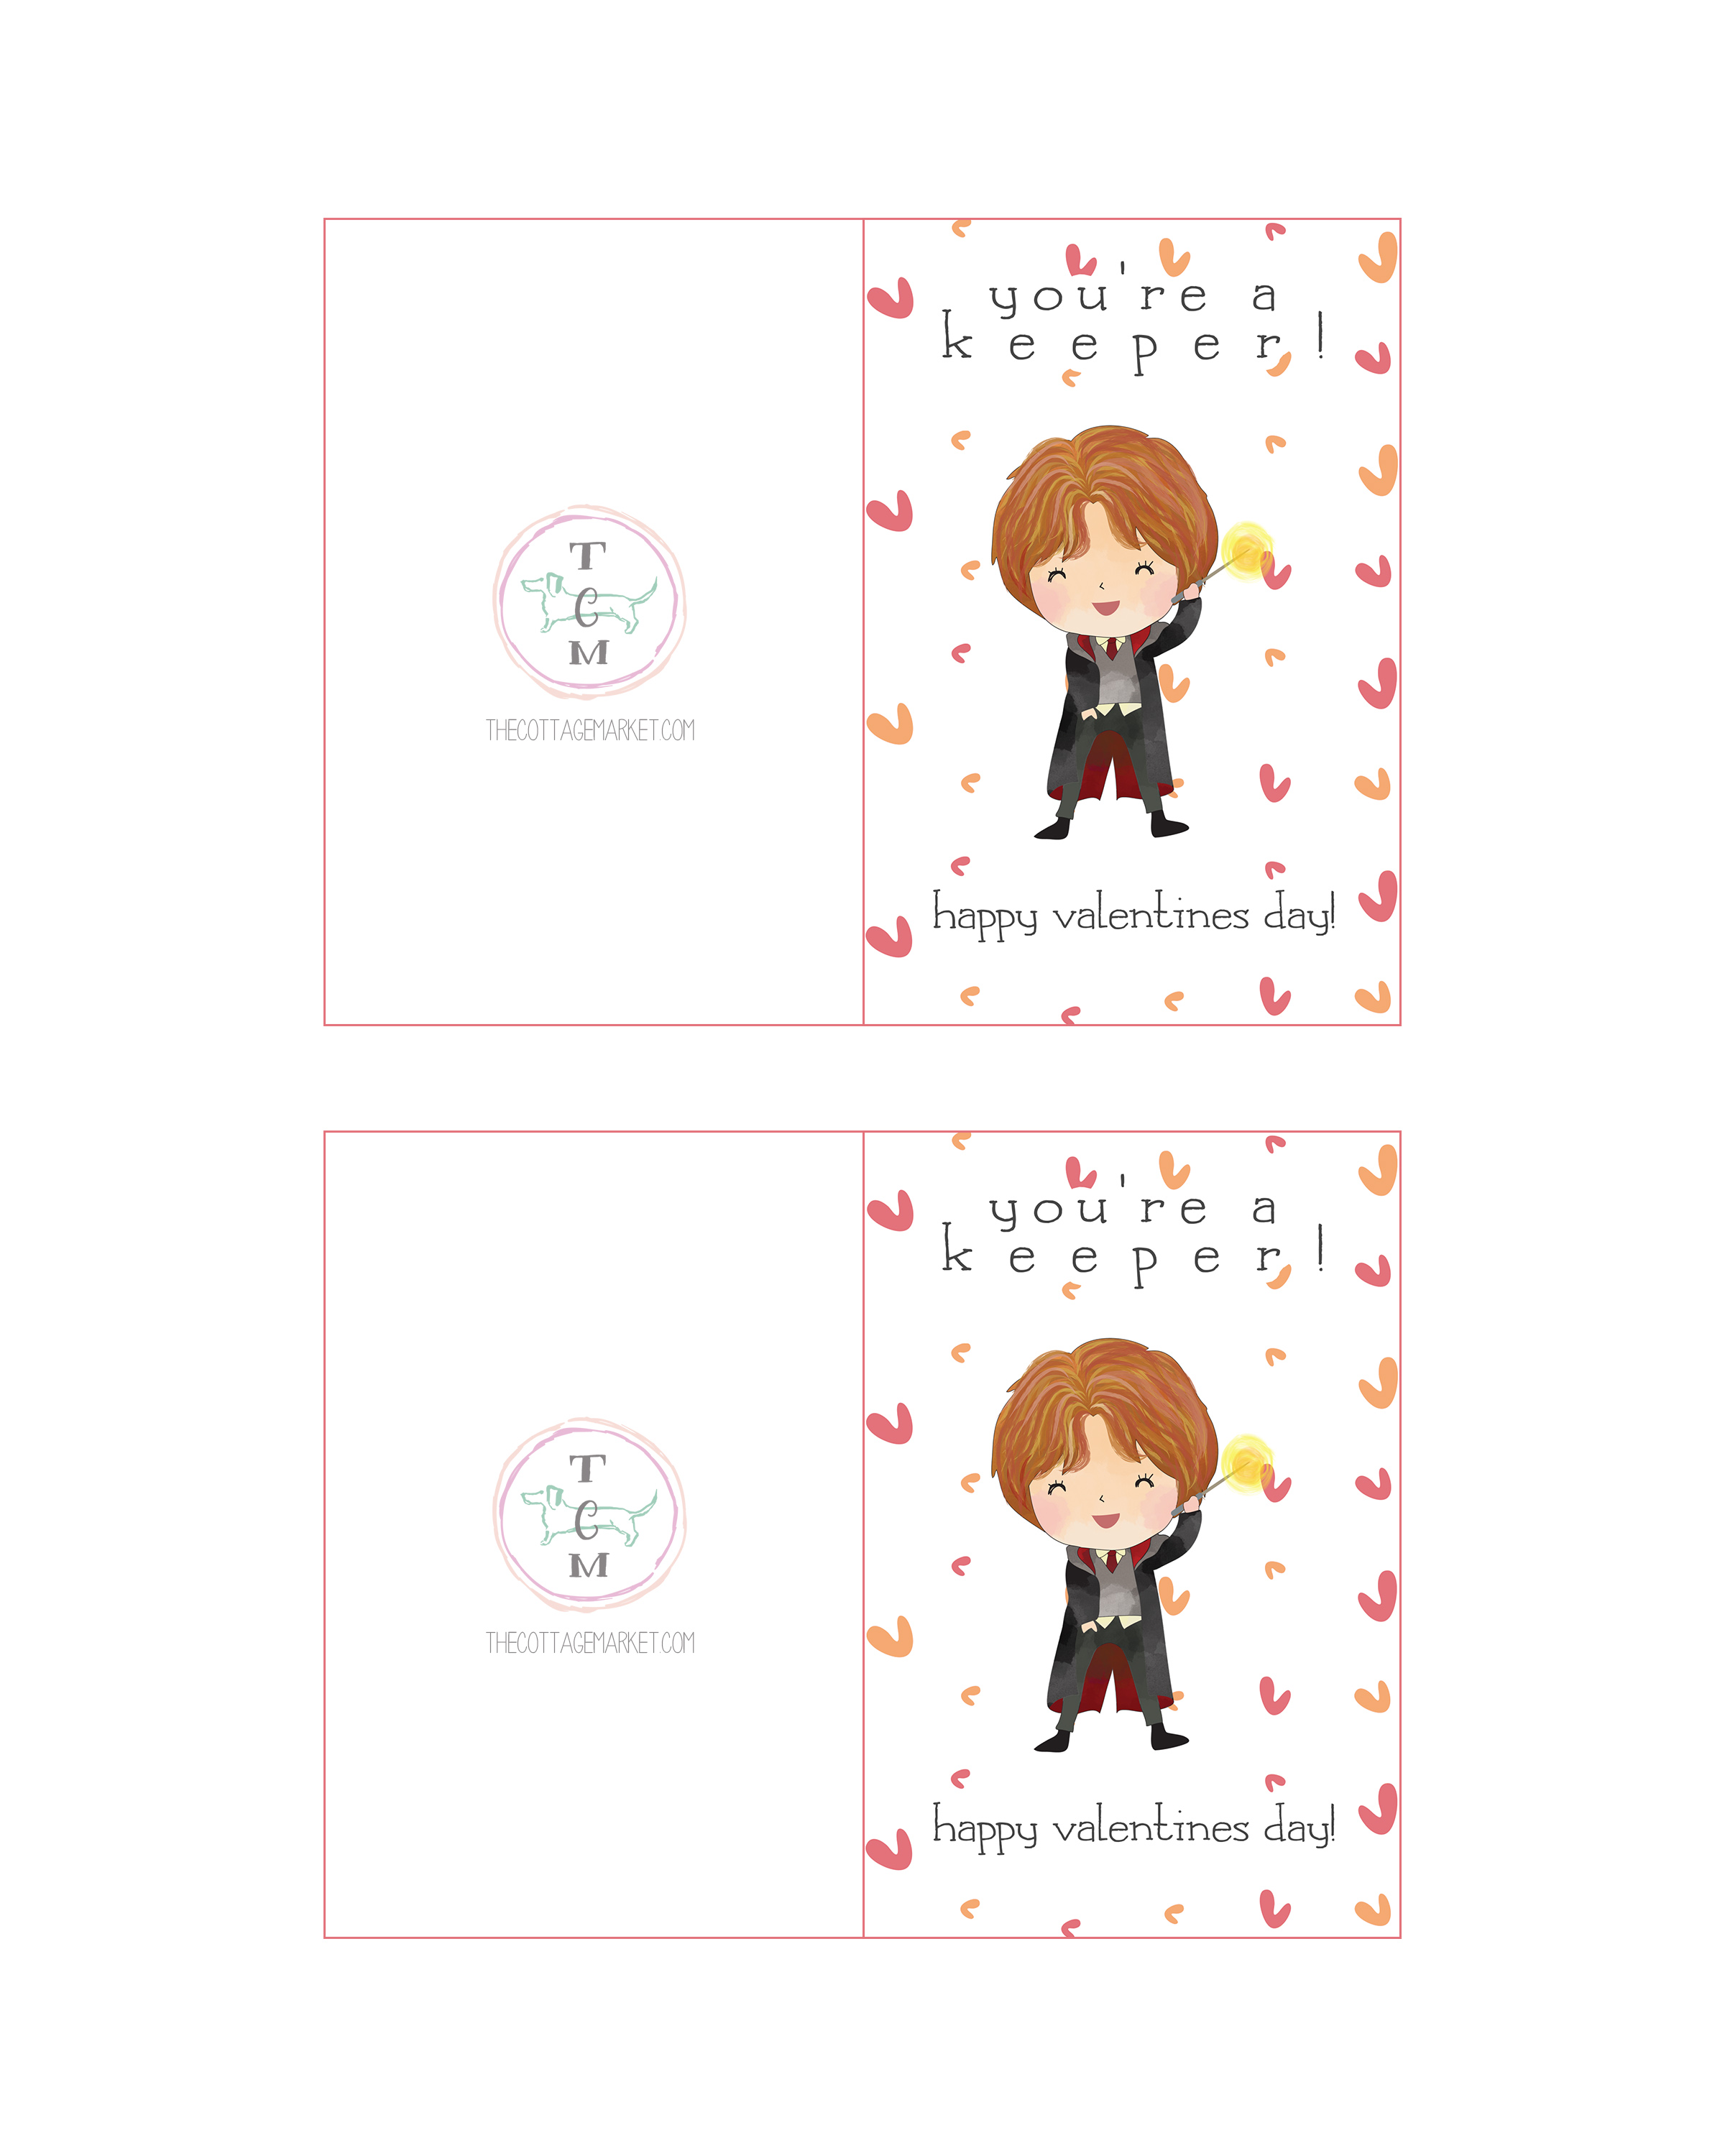 Harry Potter Card. Ron Weasley Card